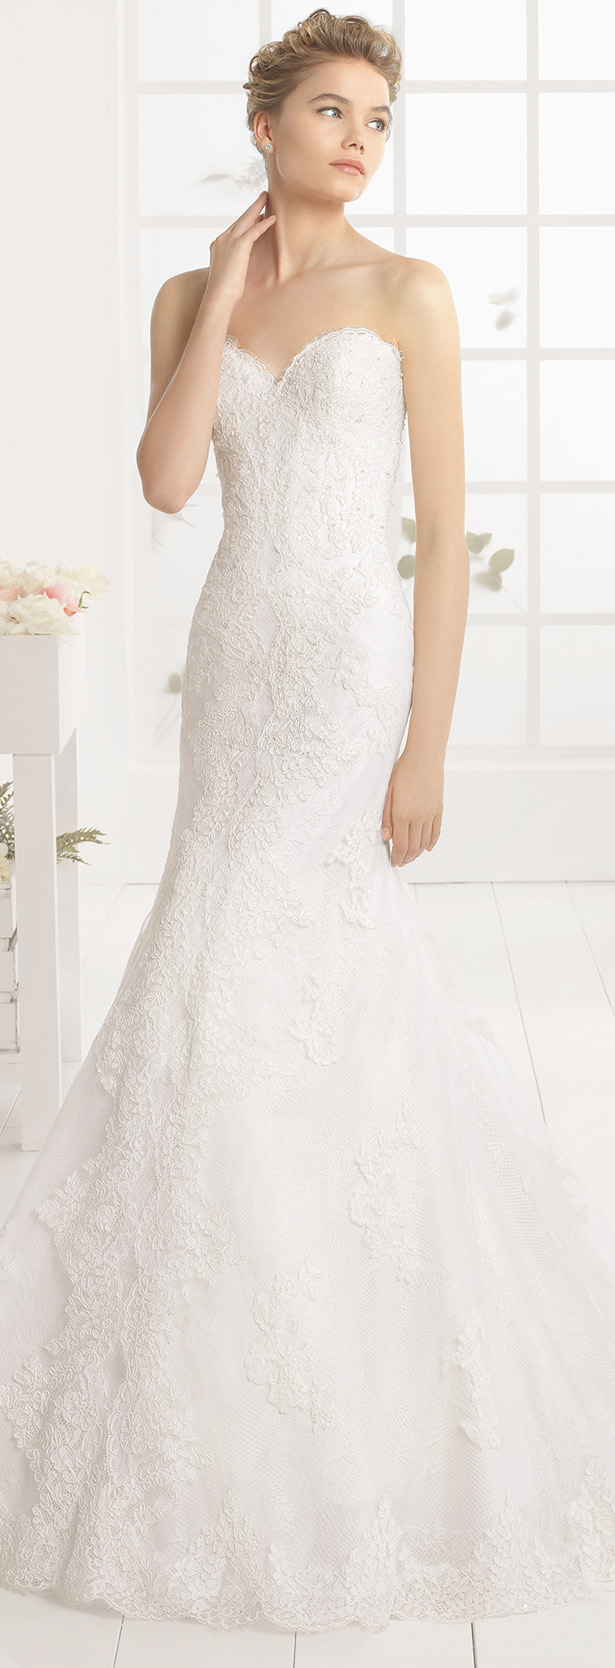 Wedding Dresses For Brides Over 50 51 Fabulous  Aire Barcelona Wedding